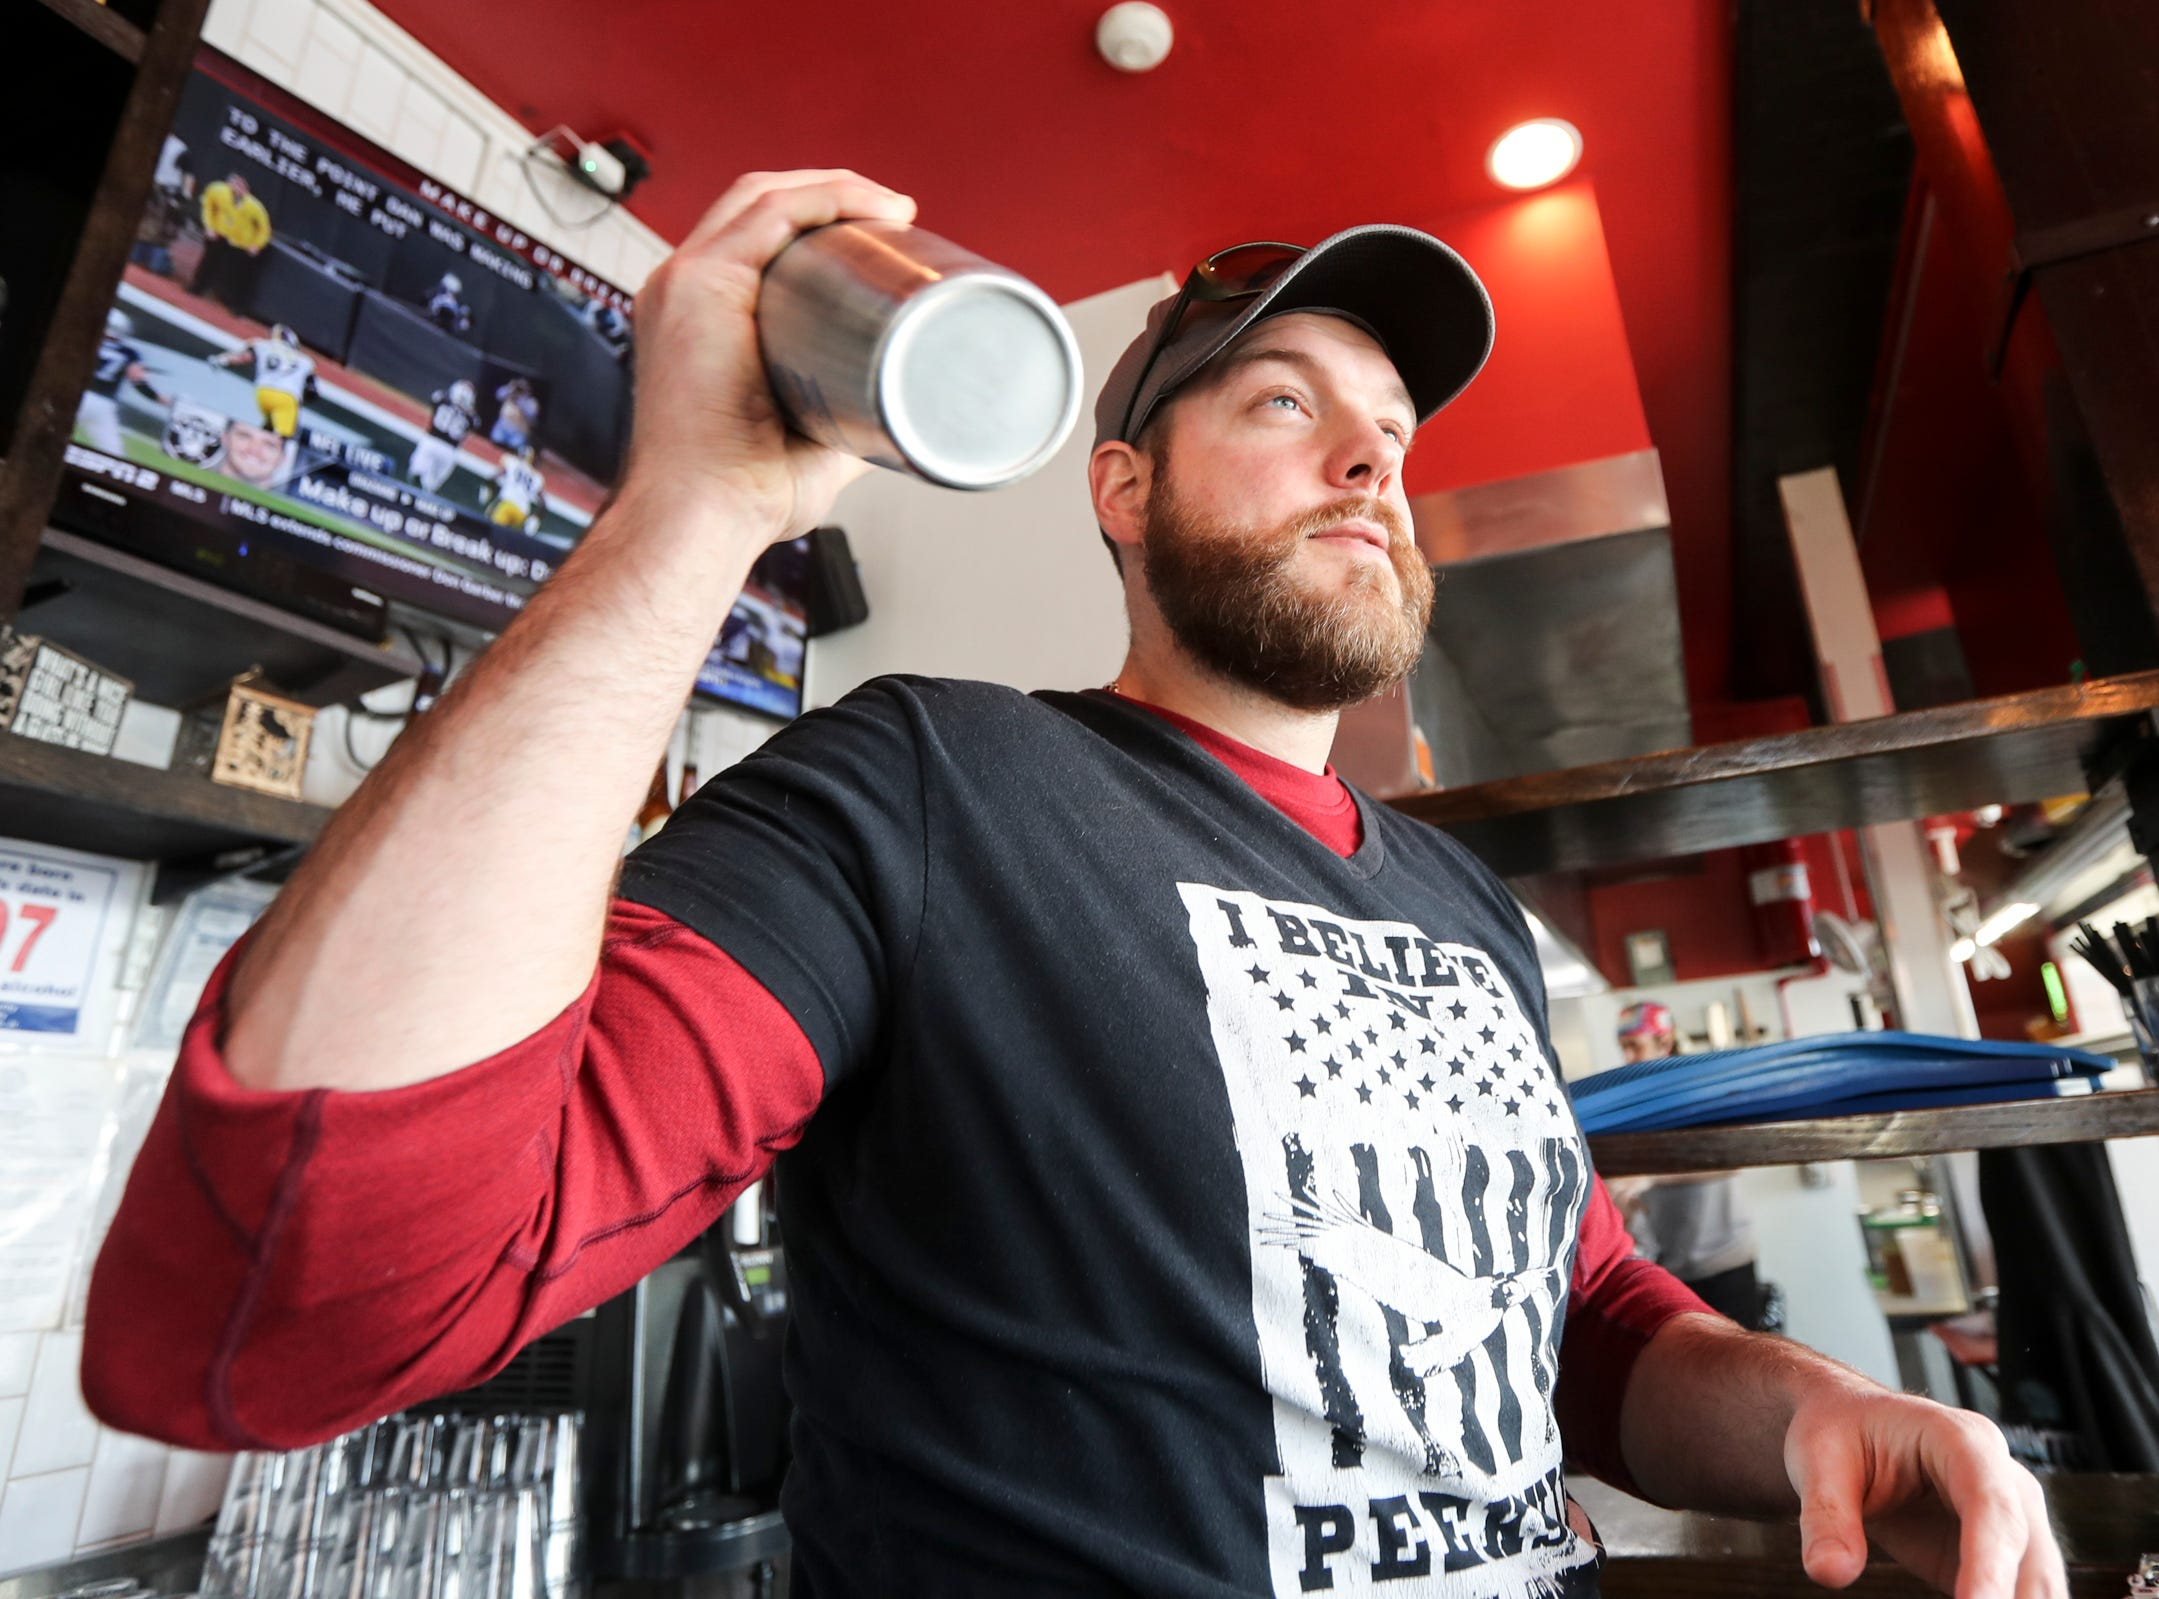 Bill Conklin, a bartender at Taco Dive Bar in Peekskill, shakes a Margarita Feb.14, 2019. Taco Dive Bar offers over fifty different tequilas. National Margarita Day is Feb. 22nd.